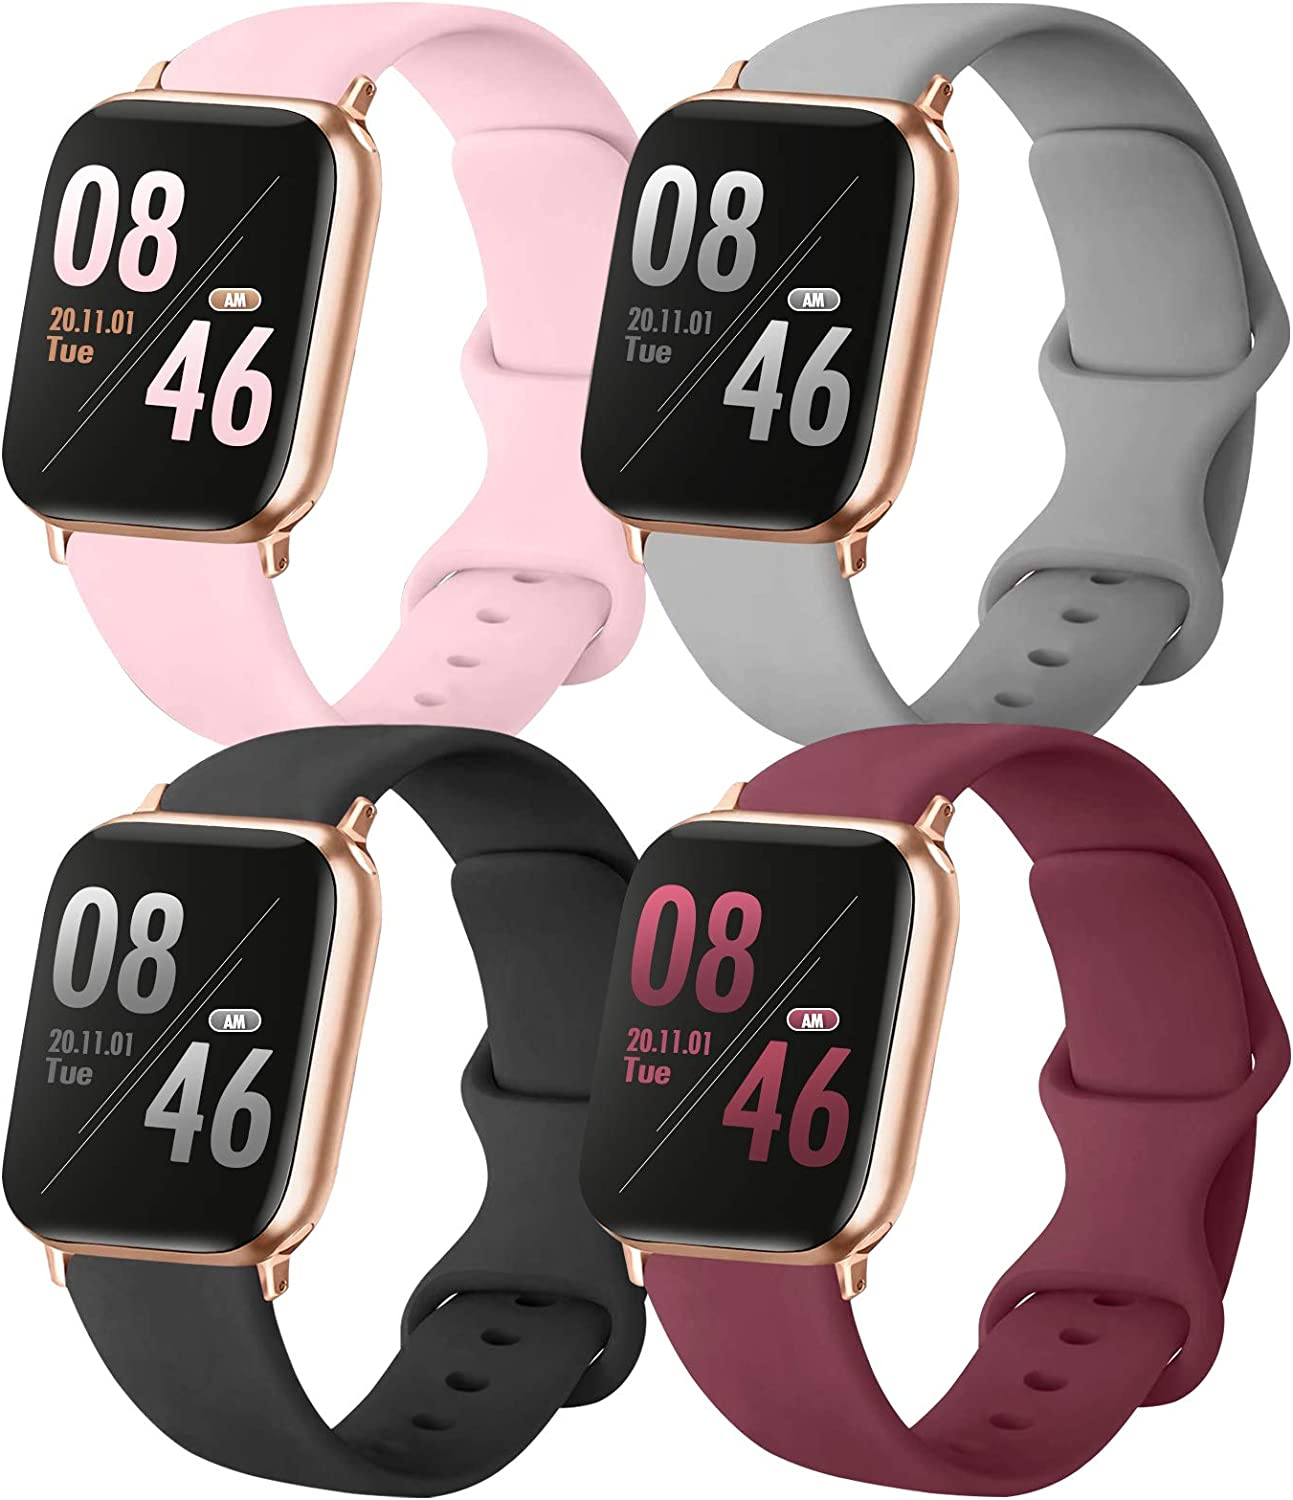 Brigtlaiff Pack 4 Compatible with Apple Watch Bands 38mm 40mm 42mm 44mm, Soft Silicone Replacement Band for iWatch Series SE/6/5/4/3/2/1 (PinkSand/Gray/Black/WineRed, 38mm/40mm-S/M)